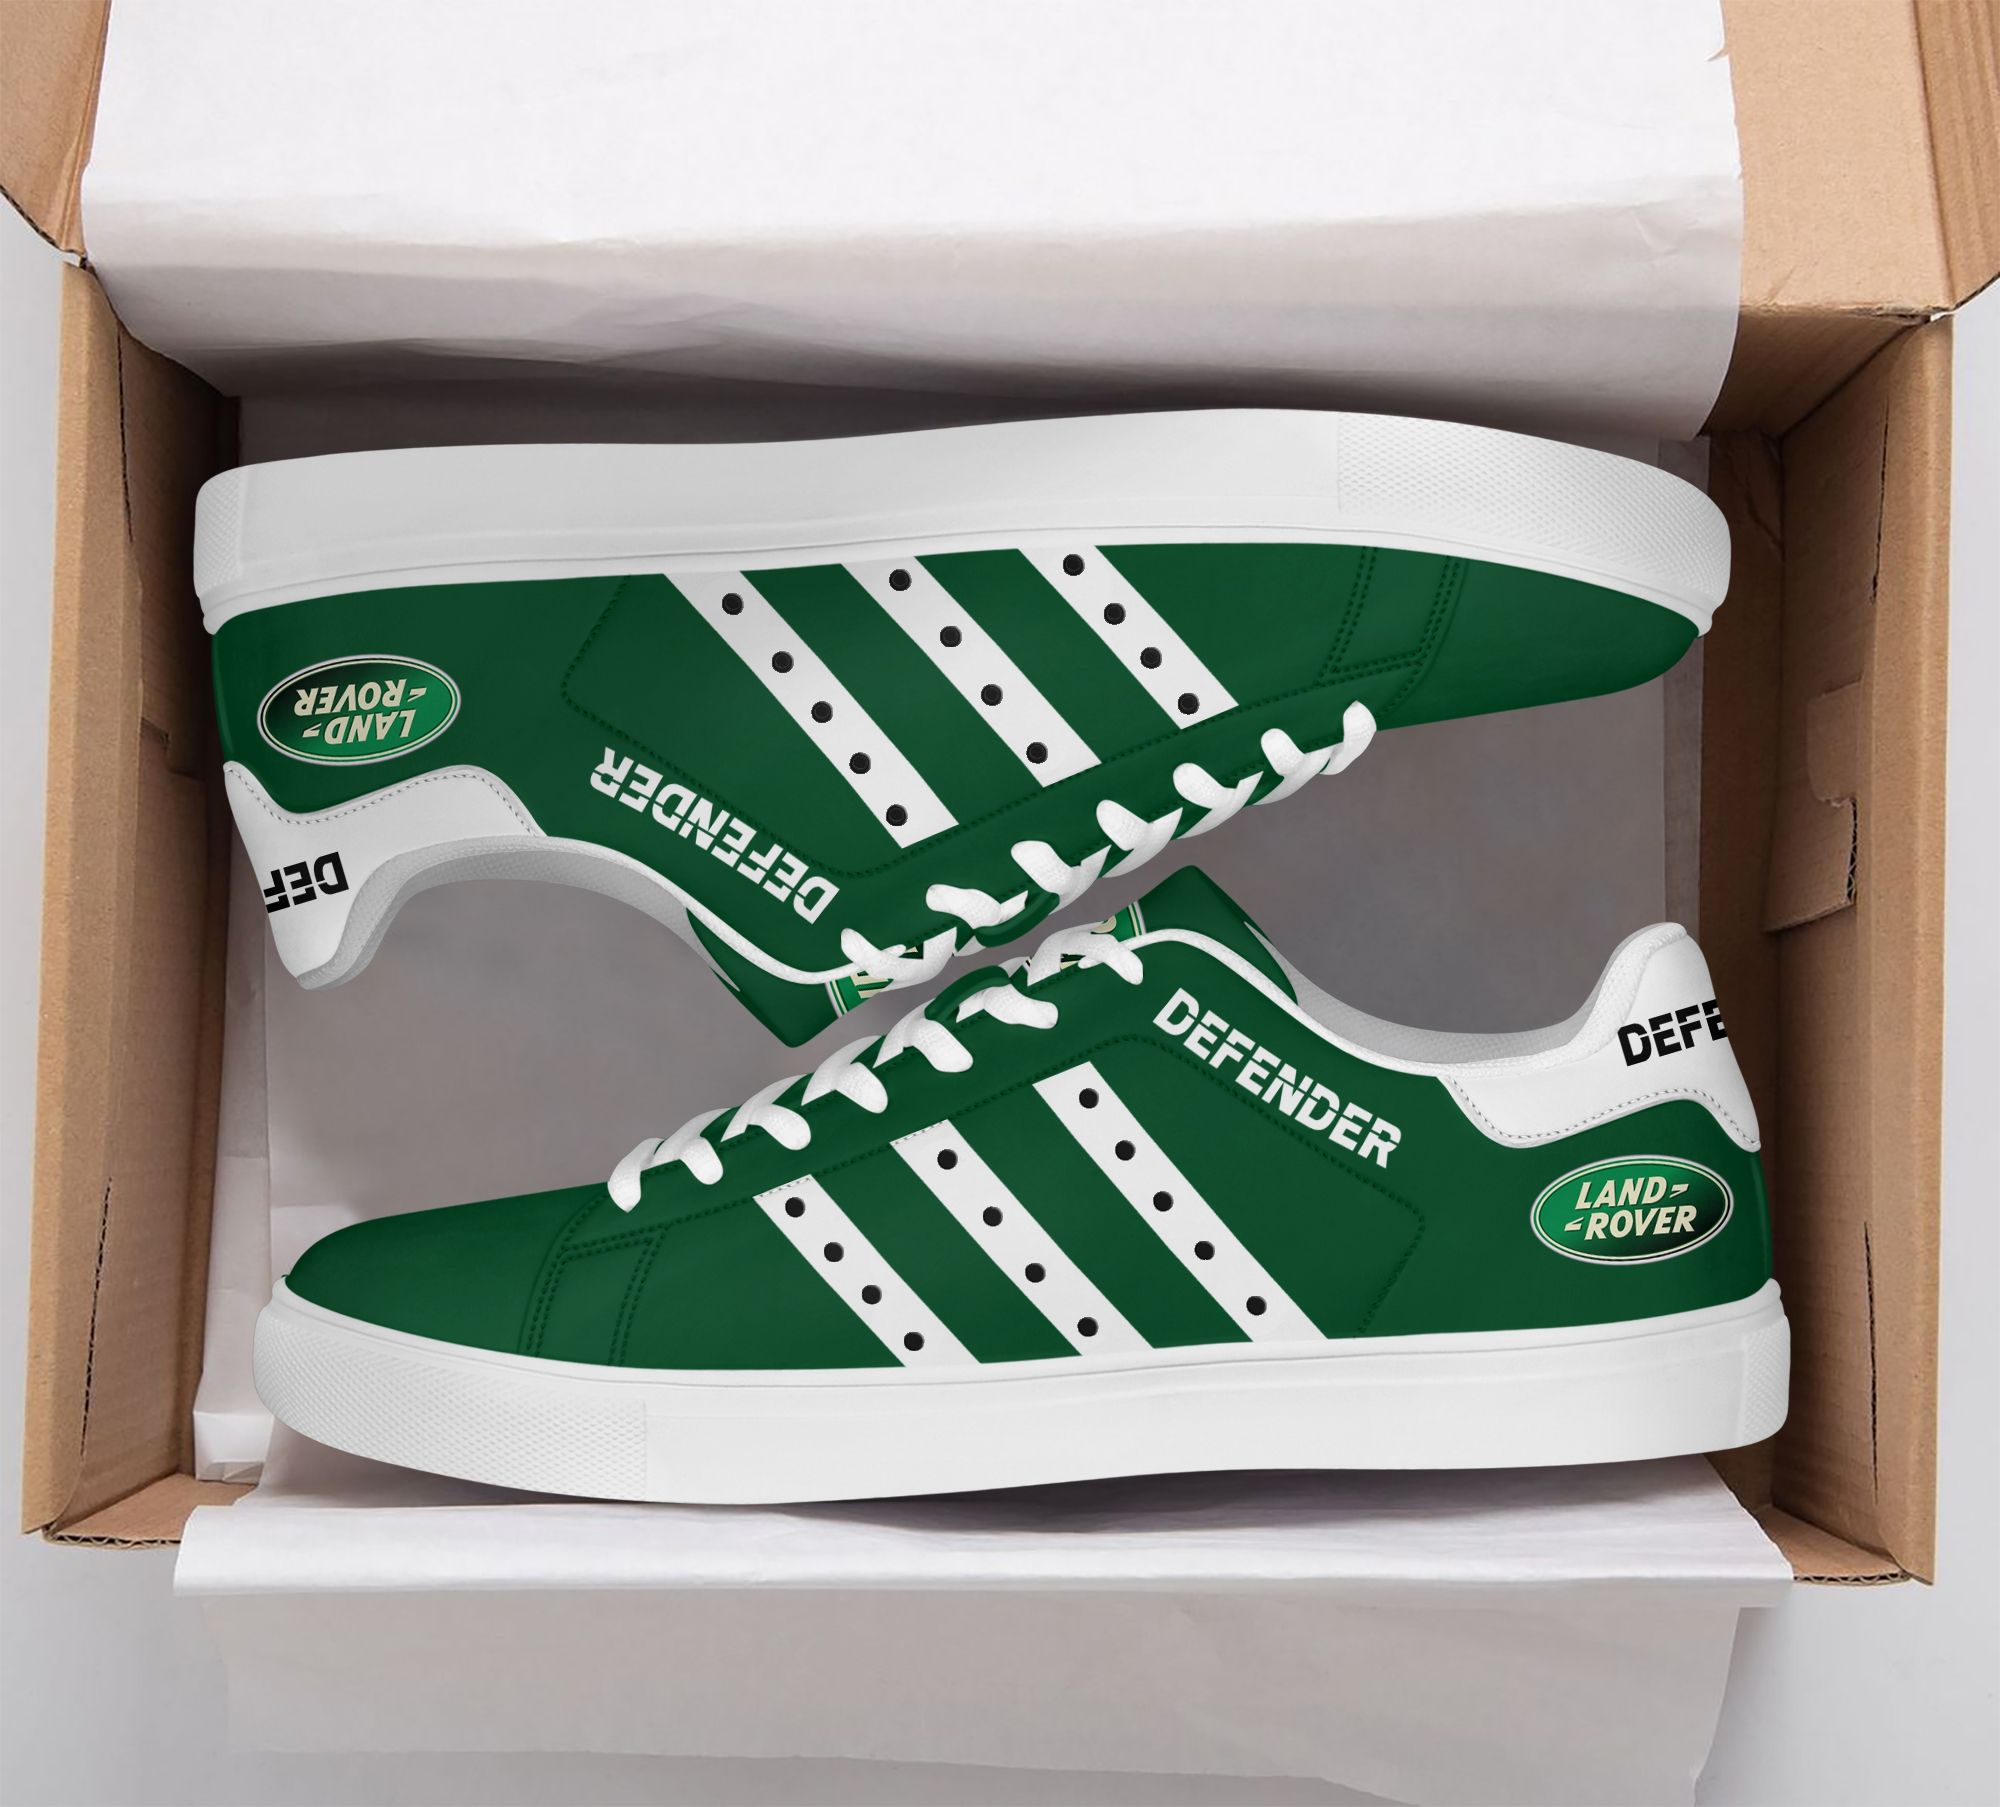 Defender Land Rover Green Edition Stan Smith Shoes